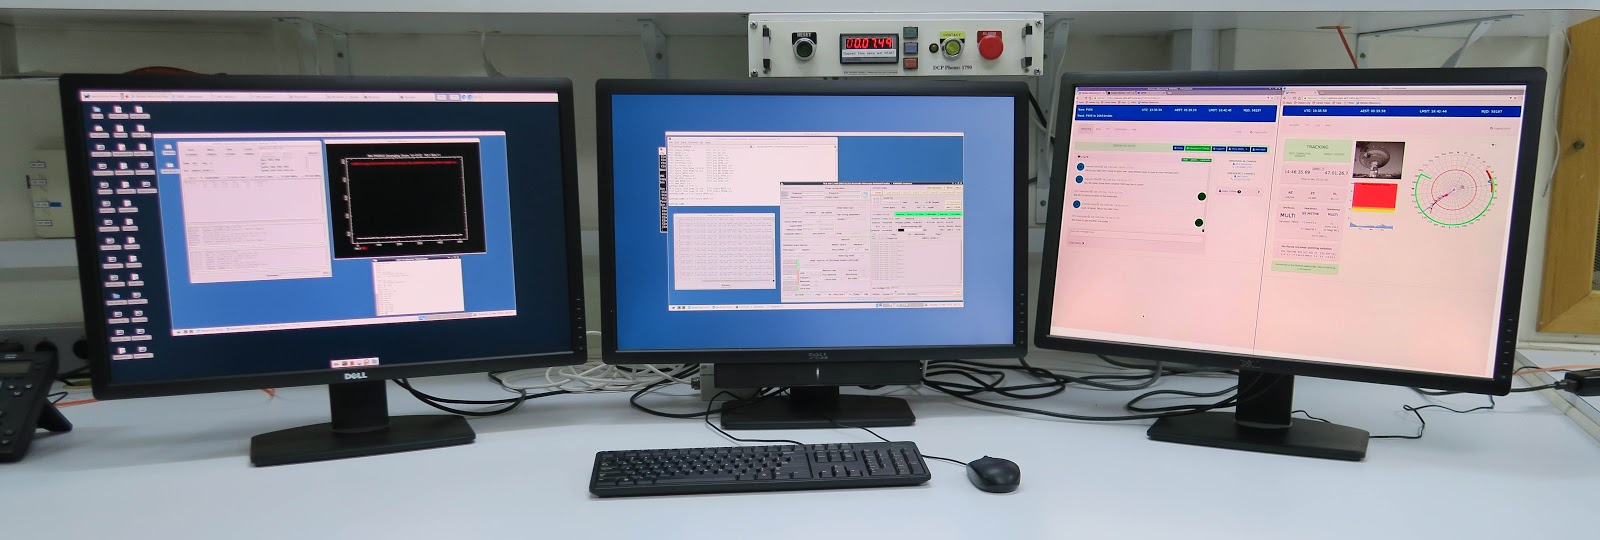 A typical setup for Remote Parkes Observing. L-R: Screen 1 with VNC2 running the correlator software; Screen 2 with VNC1 running the primary observing software; Screen 3 with the PORTAL and FROG. NOTE: This three screen setup is not essential, but it does allow for easy visual monitoring of the observation. Also to note for UWL observations, the first screen would be replaced with an additional web browser window containing DHAGU and the second would show the VNC1 desktop but with the UWL GUI for LNA control and OPERFCC for receiver translation.